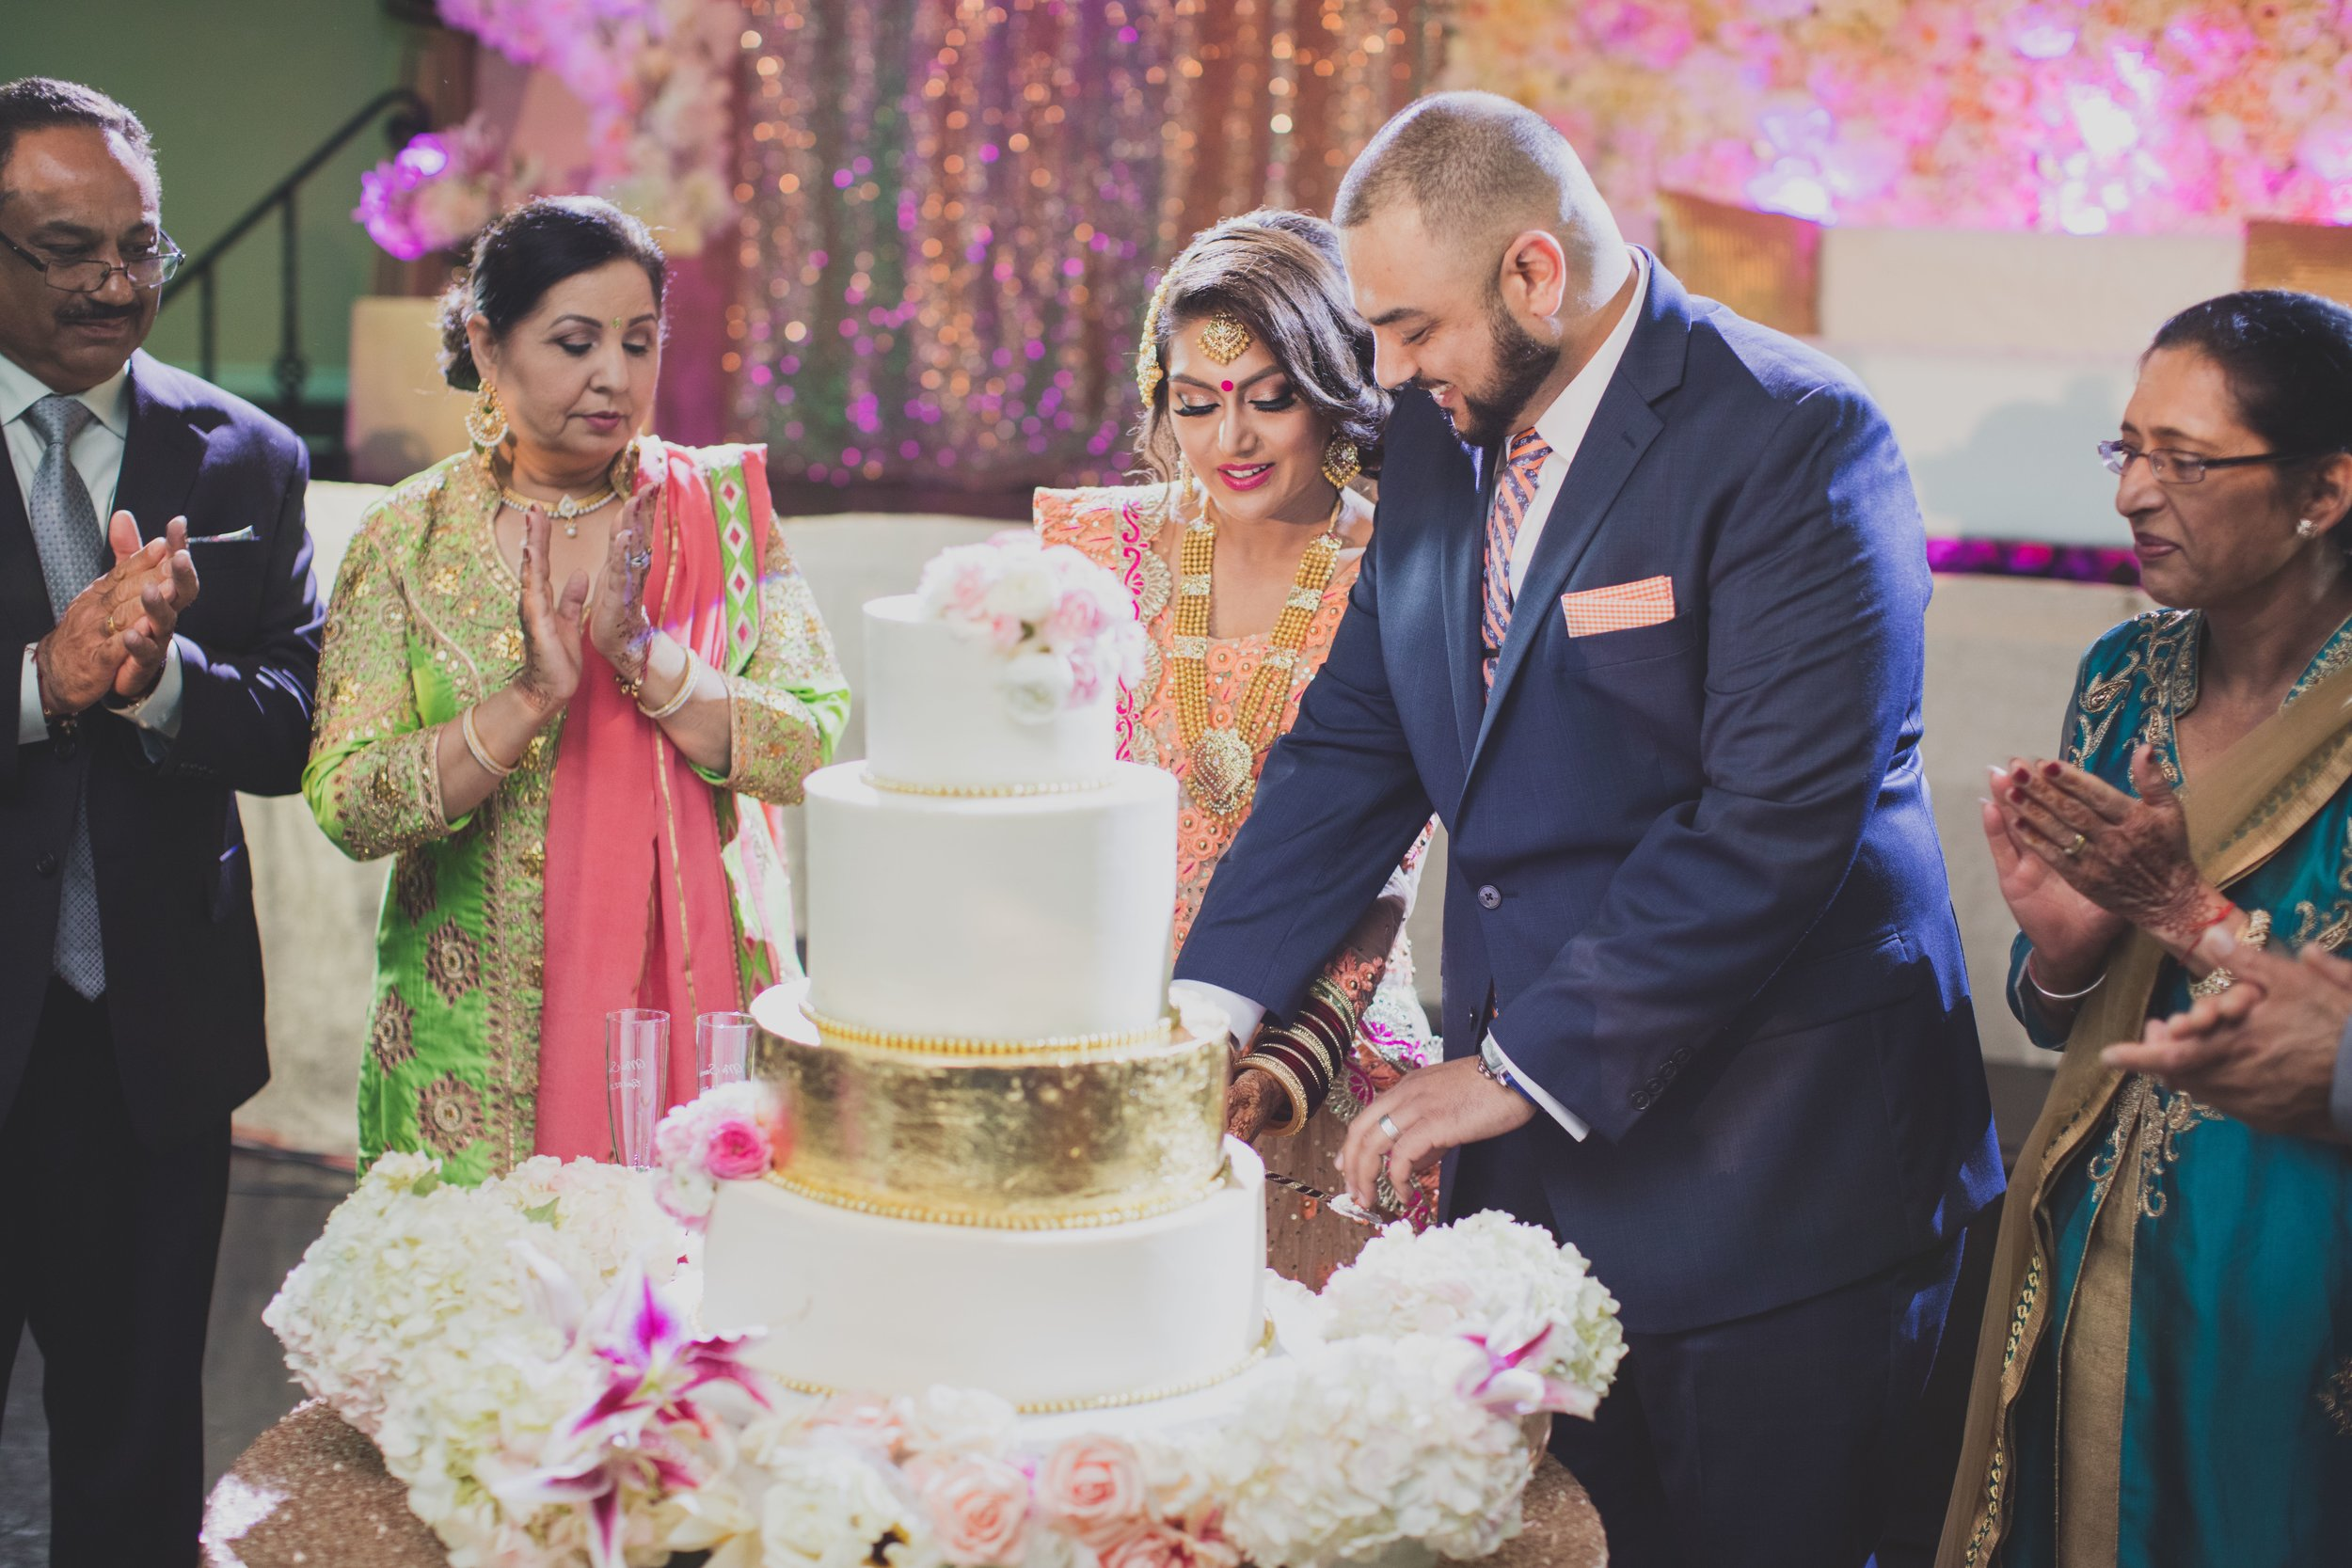 onlineAman & Ravi Wedding & Reception-7474.jpg